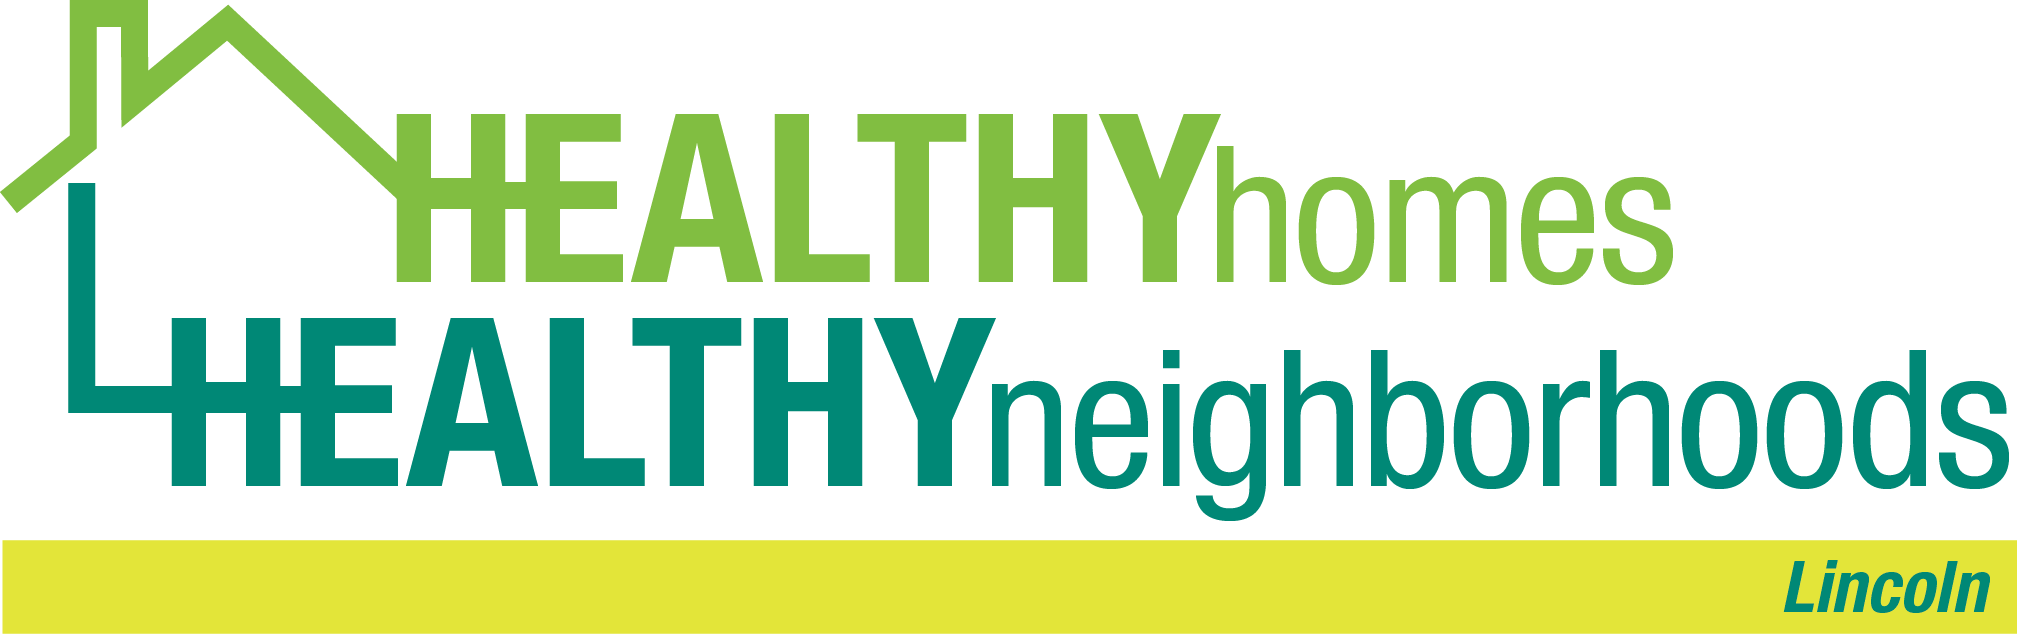 The Healthy Homes, Healthy Neighborhoods - Lincoln program logo